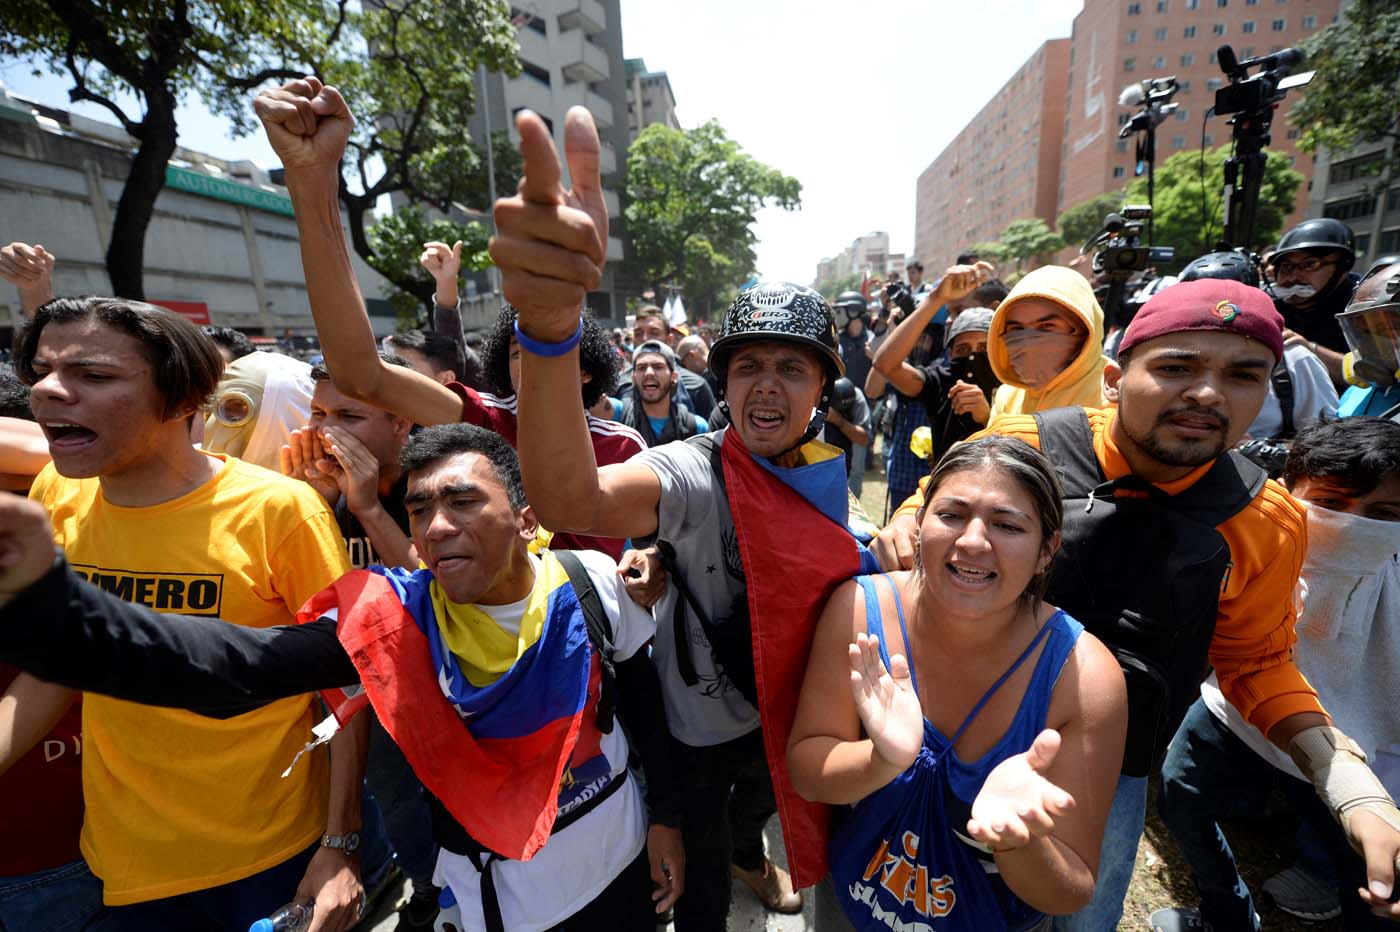 """Venezuelan opposition activists demonstrate during a protest in Caracas on April 4, 2017. Venezuela has been mired in turmoil since the Supreme Court last week tried to tighten Maduro's grip on power by assuming legislative powers from the National Assembly -- a move opponents had angrily branded as a """"coup d'etat."""" / AFP PHOTO / FEDERICO PARRA"""